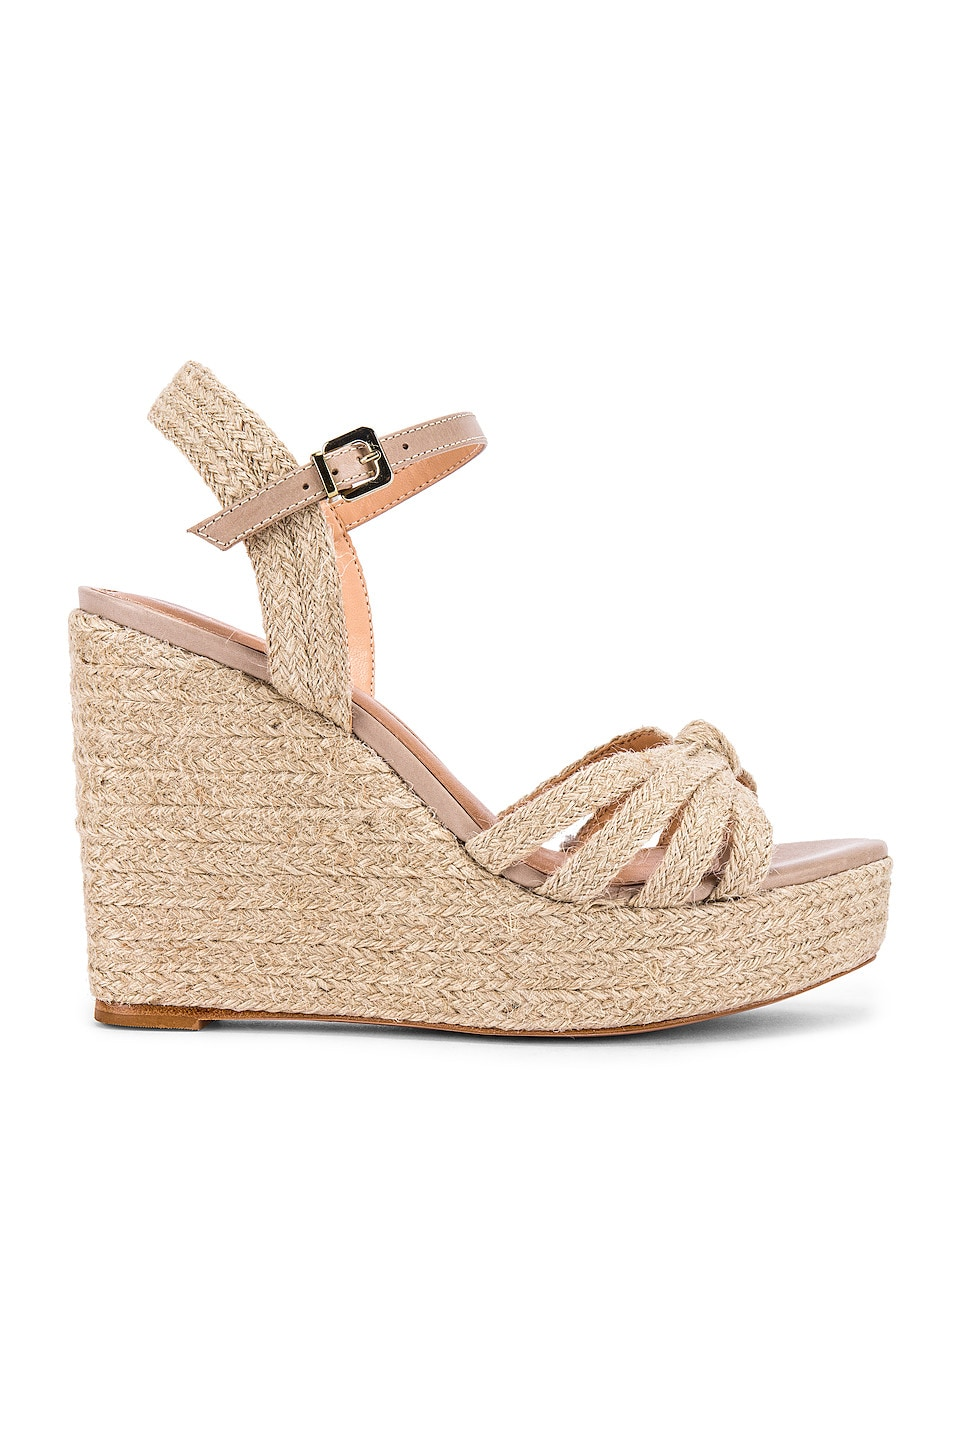 RAYE Seaside Wedge in Natural